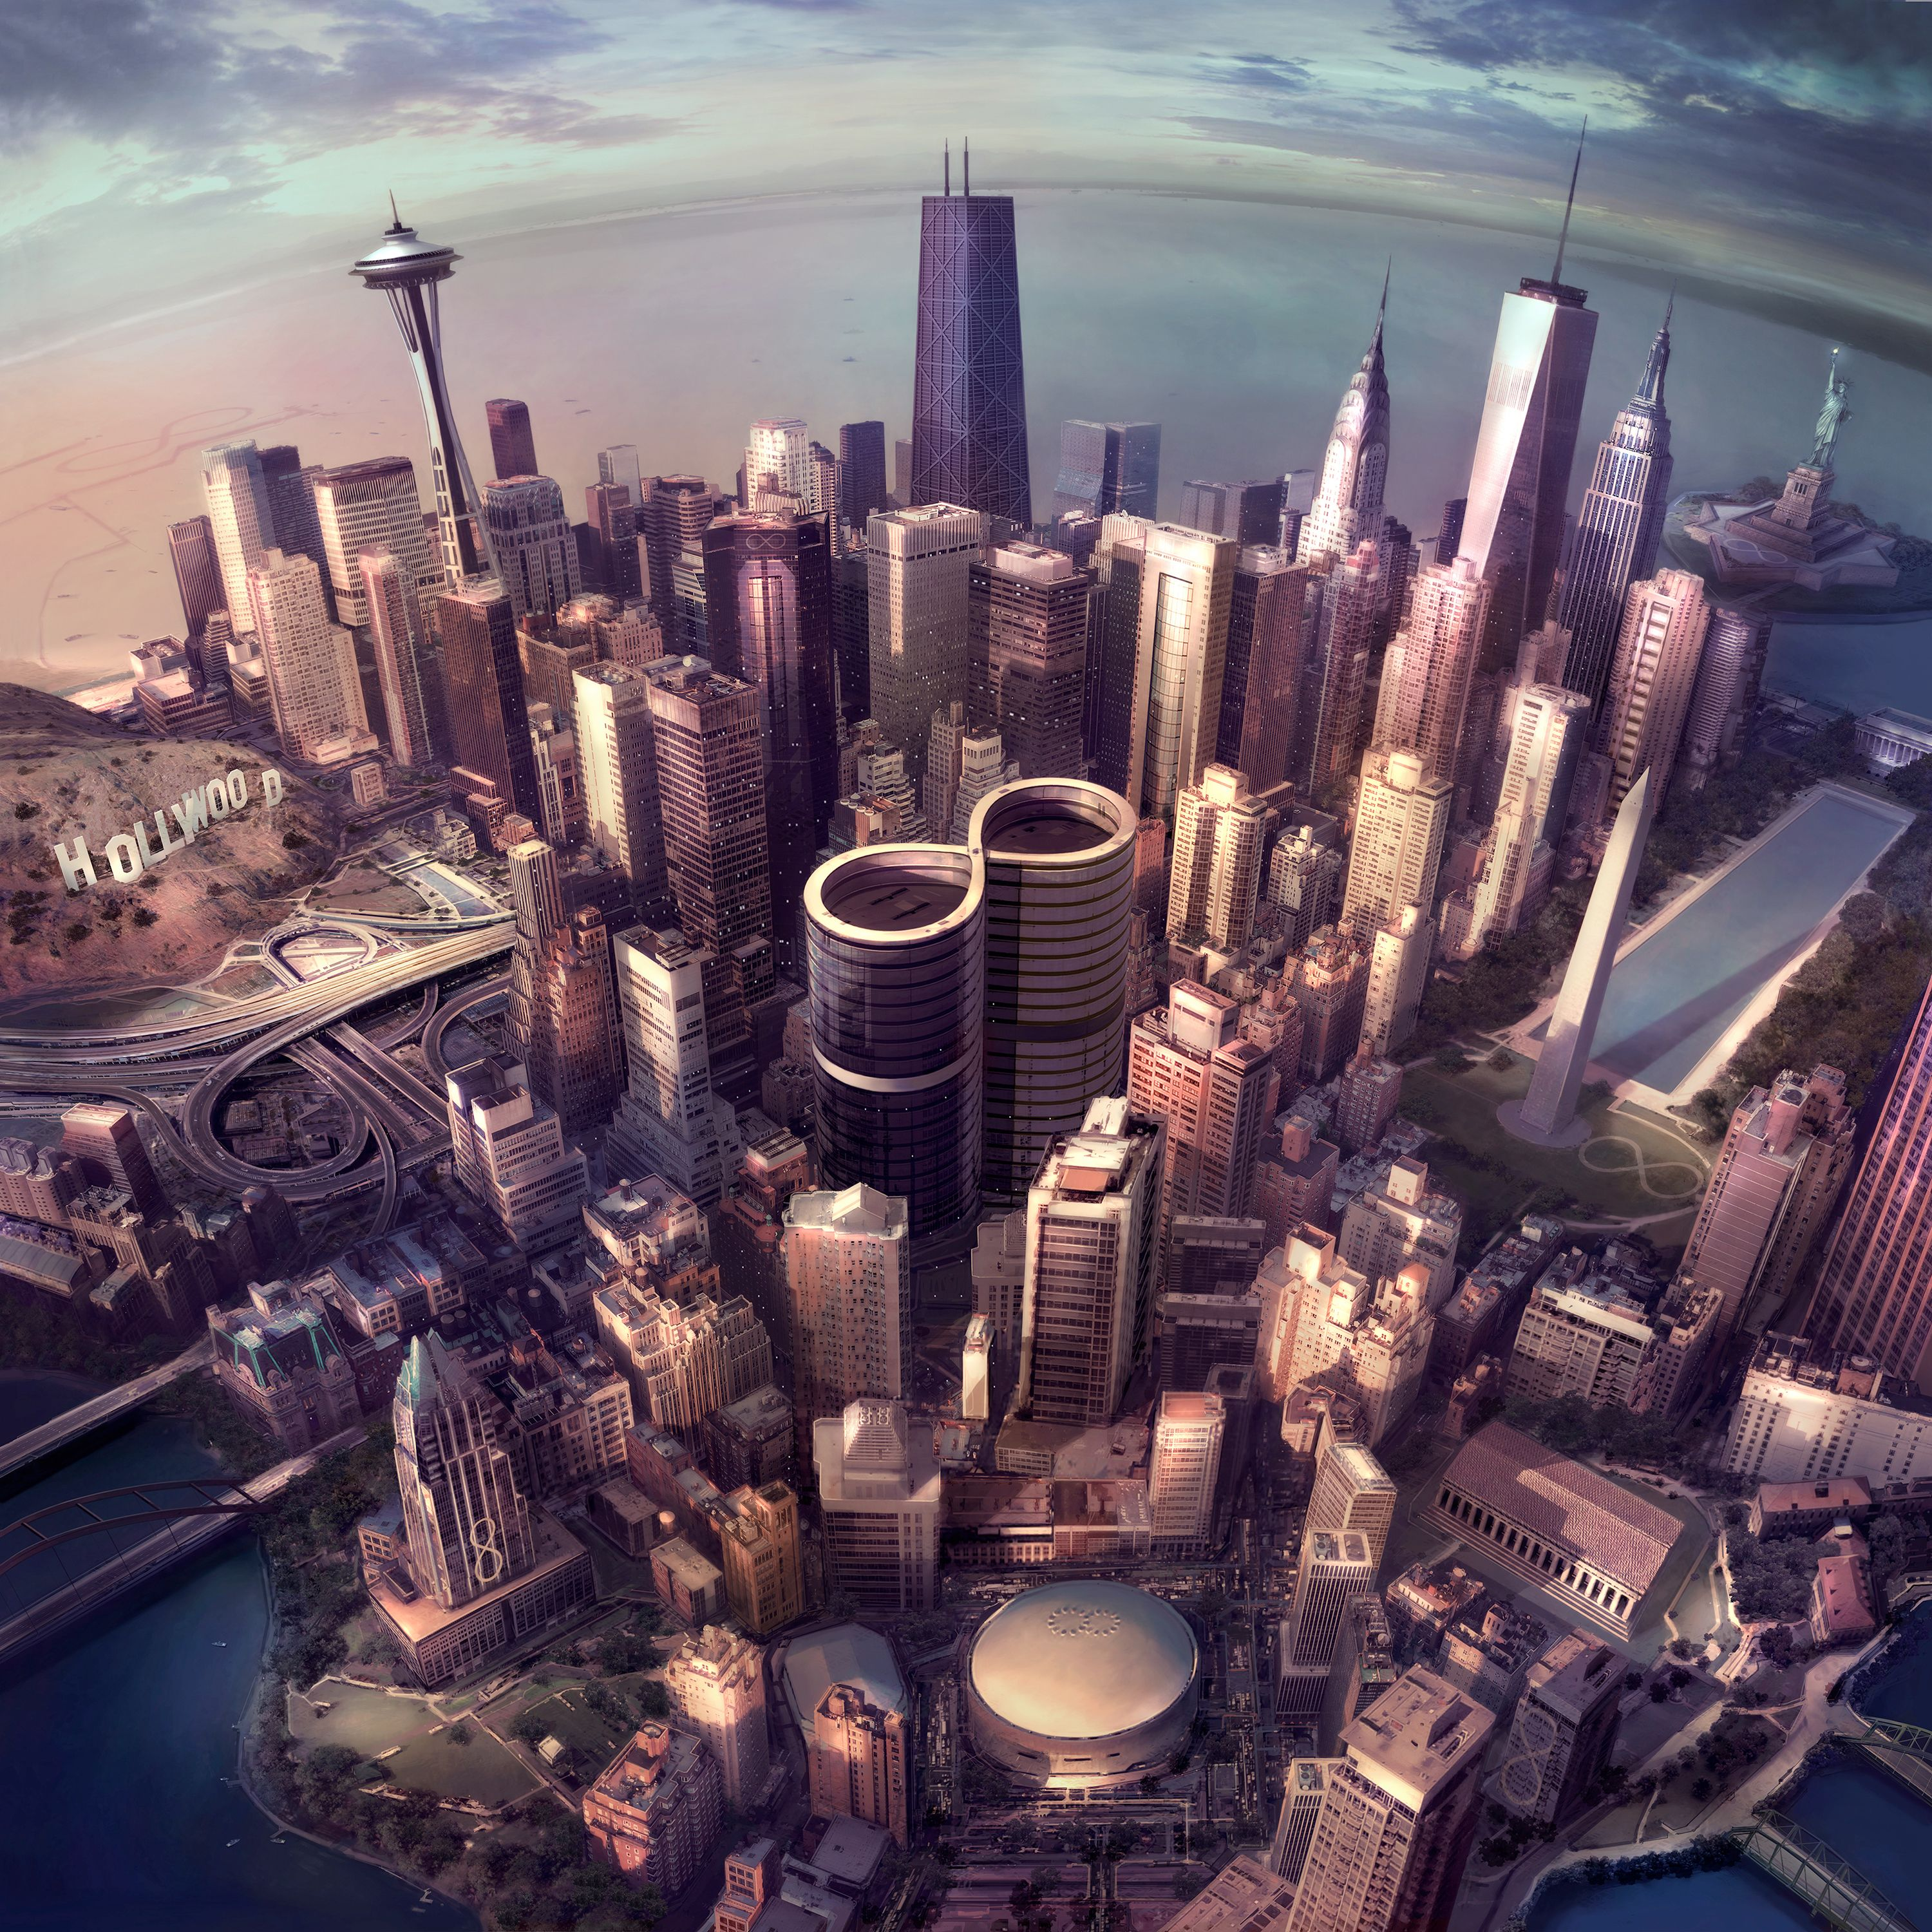 Cover for sonic highways by foo fighters how many infinity symbols cover for sonic highways by foo fighters how many infinity symbols can you locate biocorpaavc Gallery